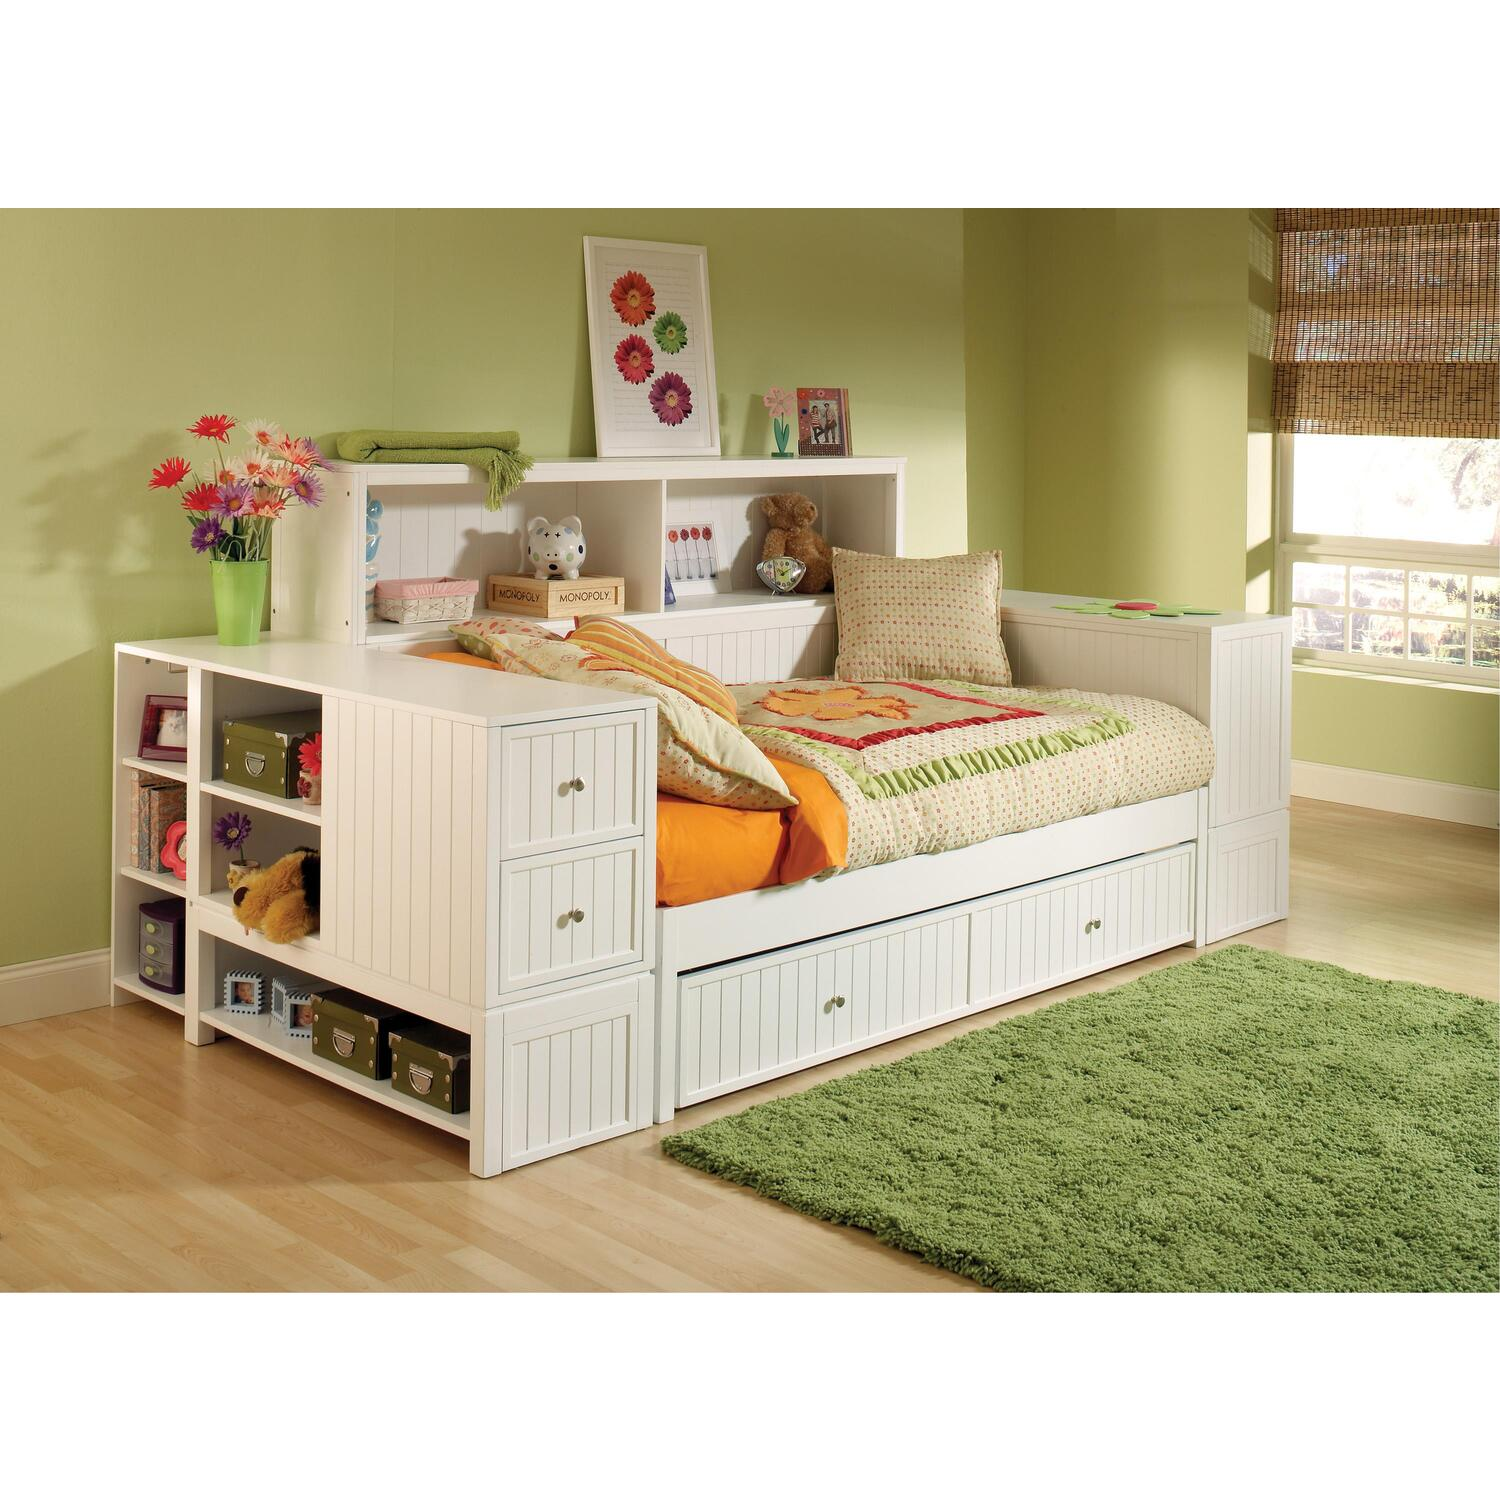 Cody Youth Bedroom Bookcase Daybed Unit 2580 99